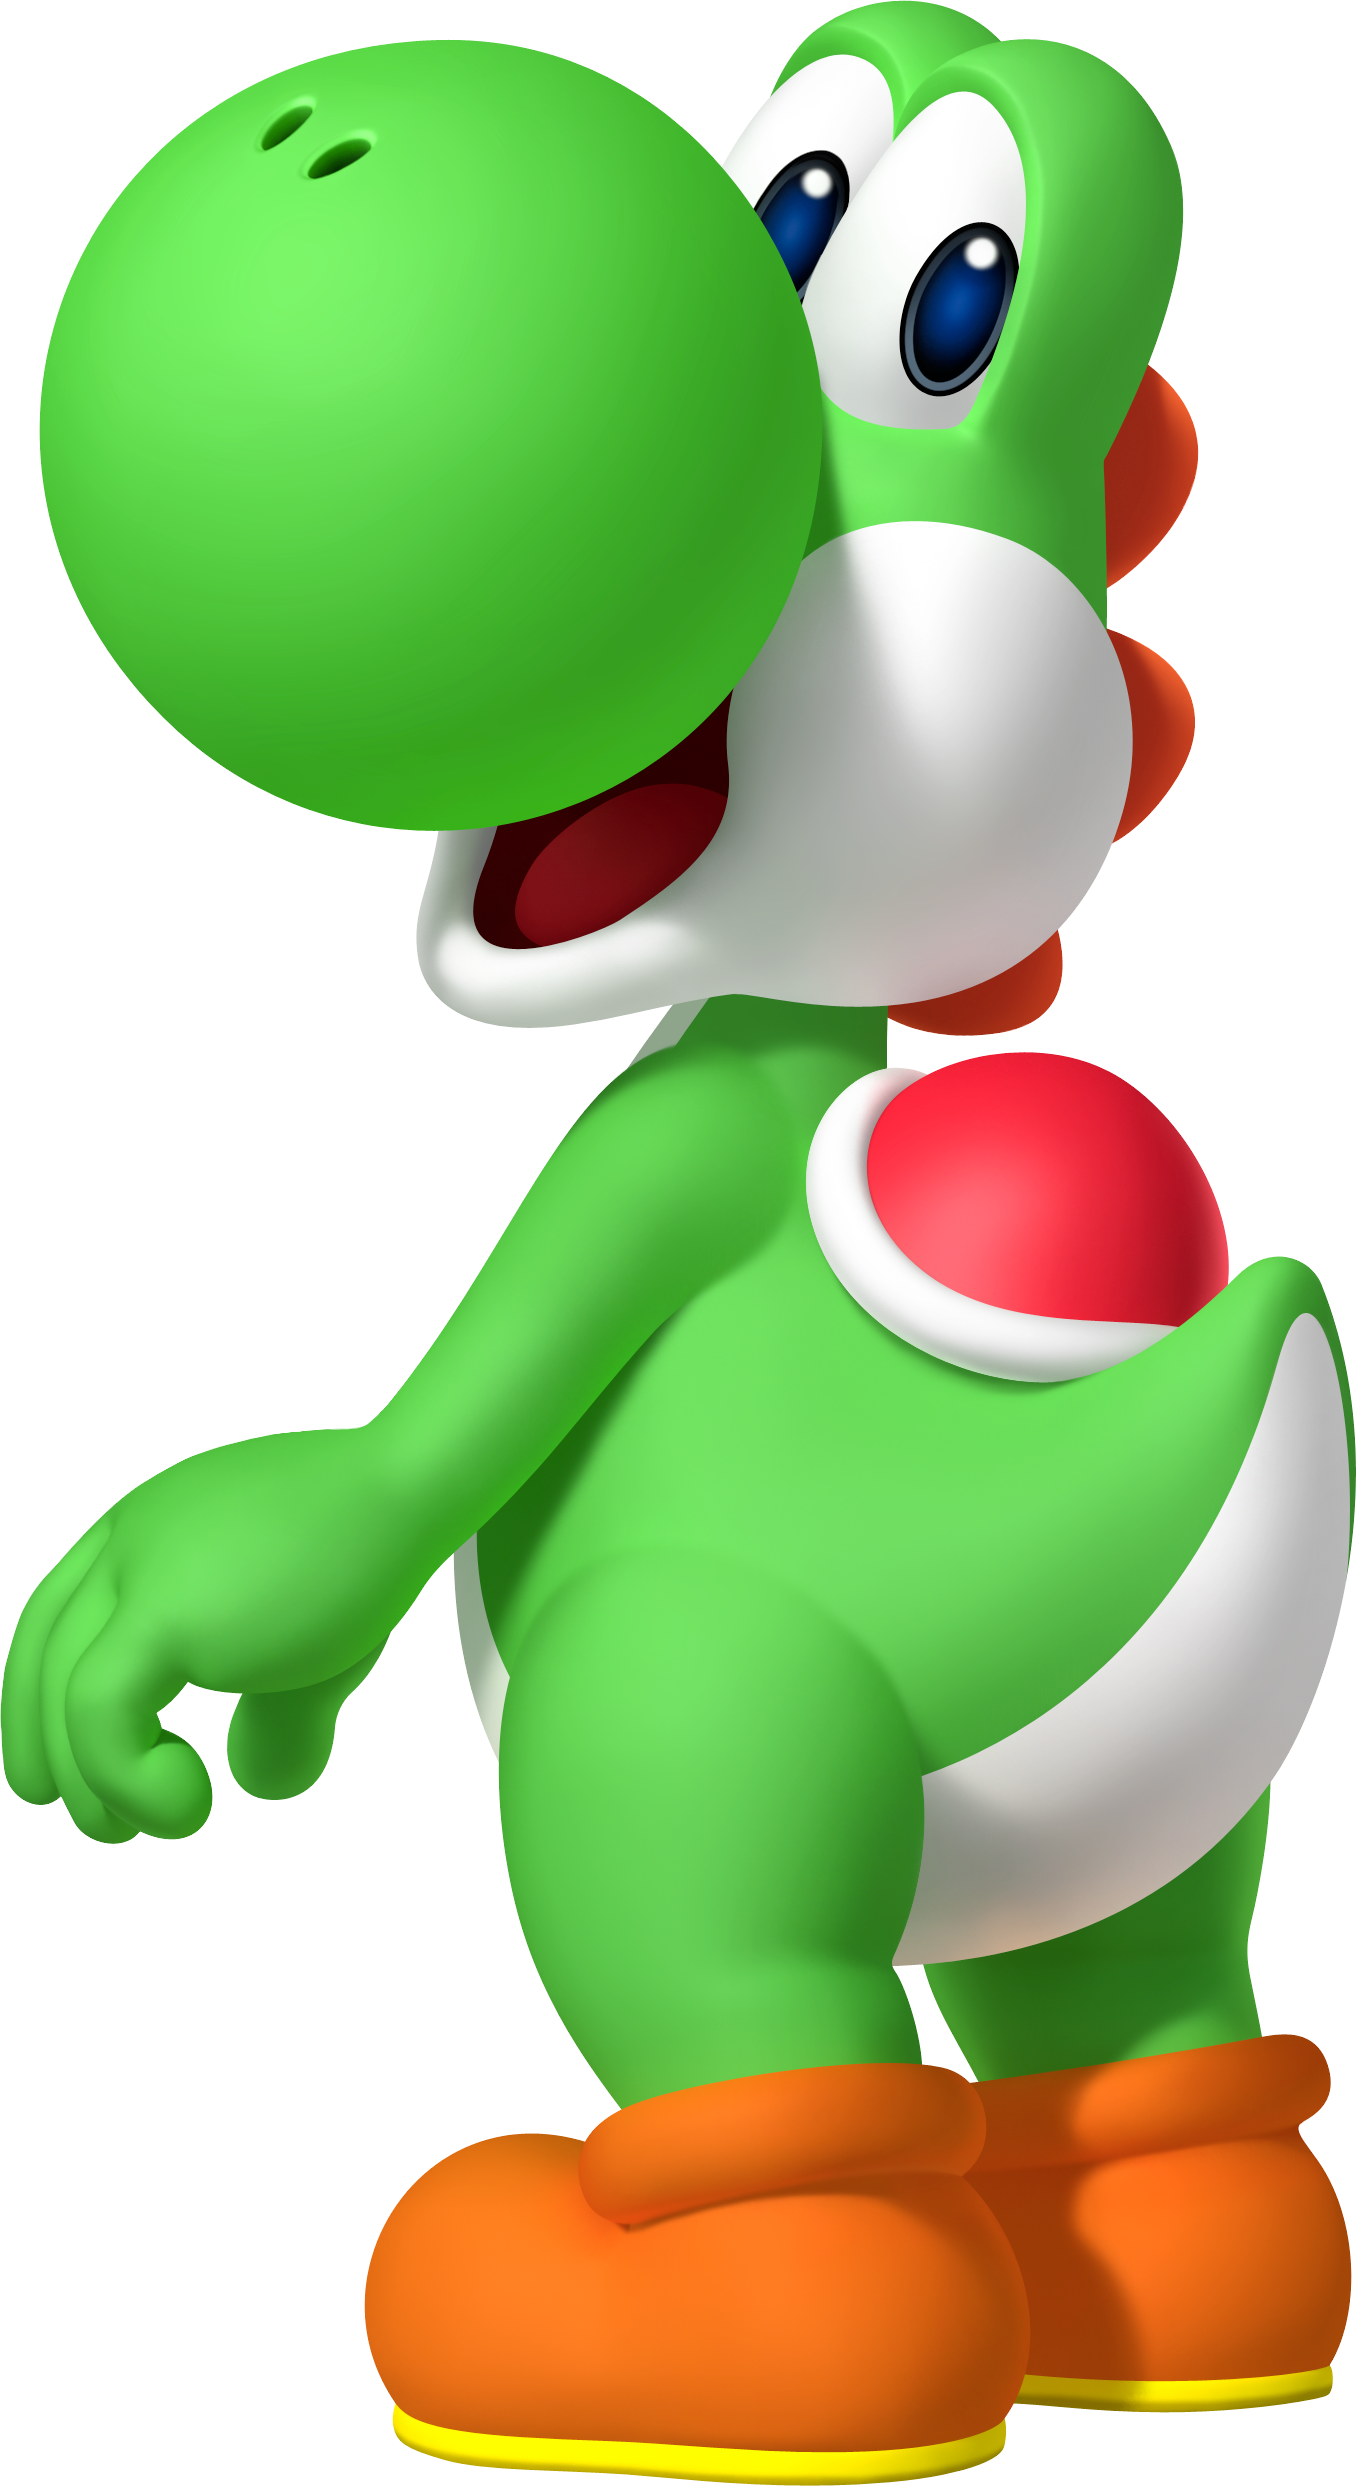 Transparent yoshi dino. Helpful dinosaur pixelated costume